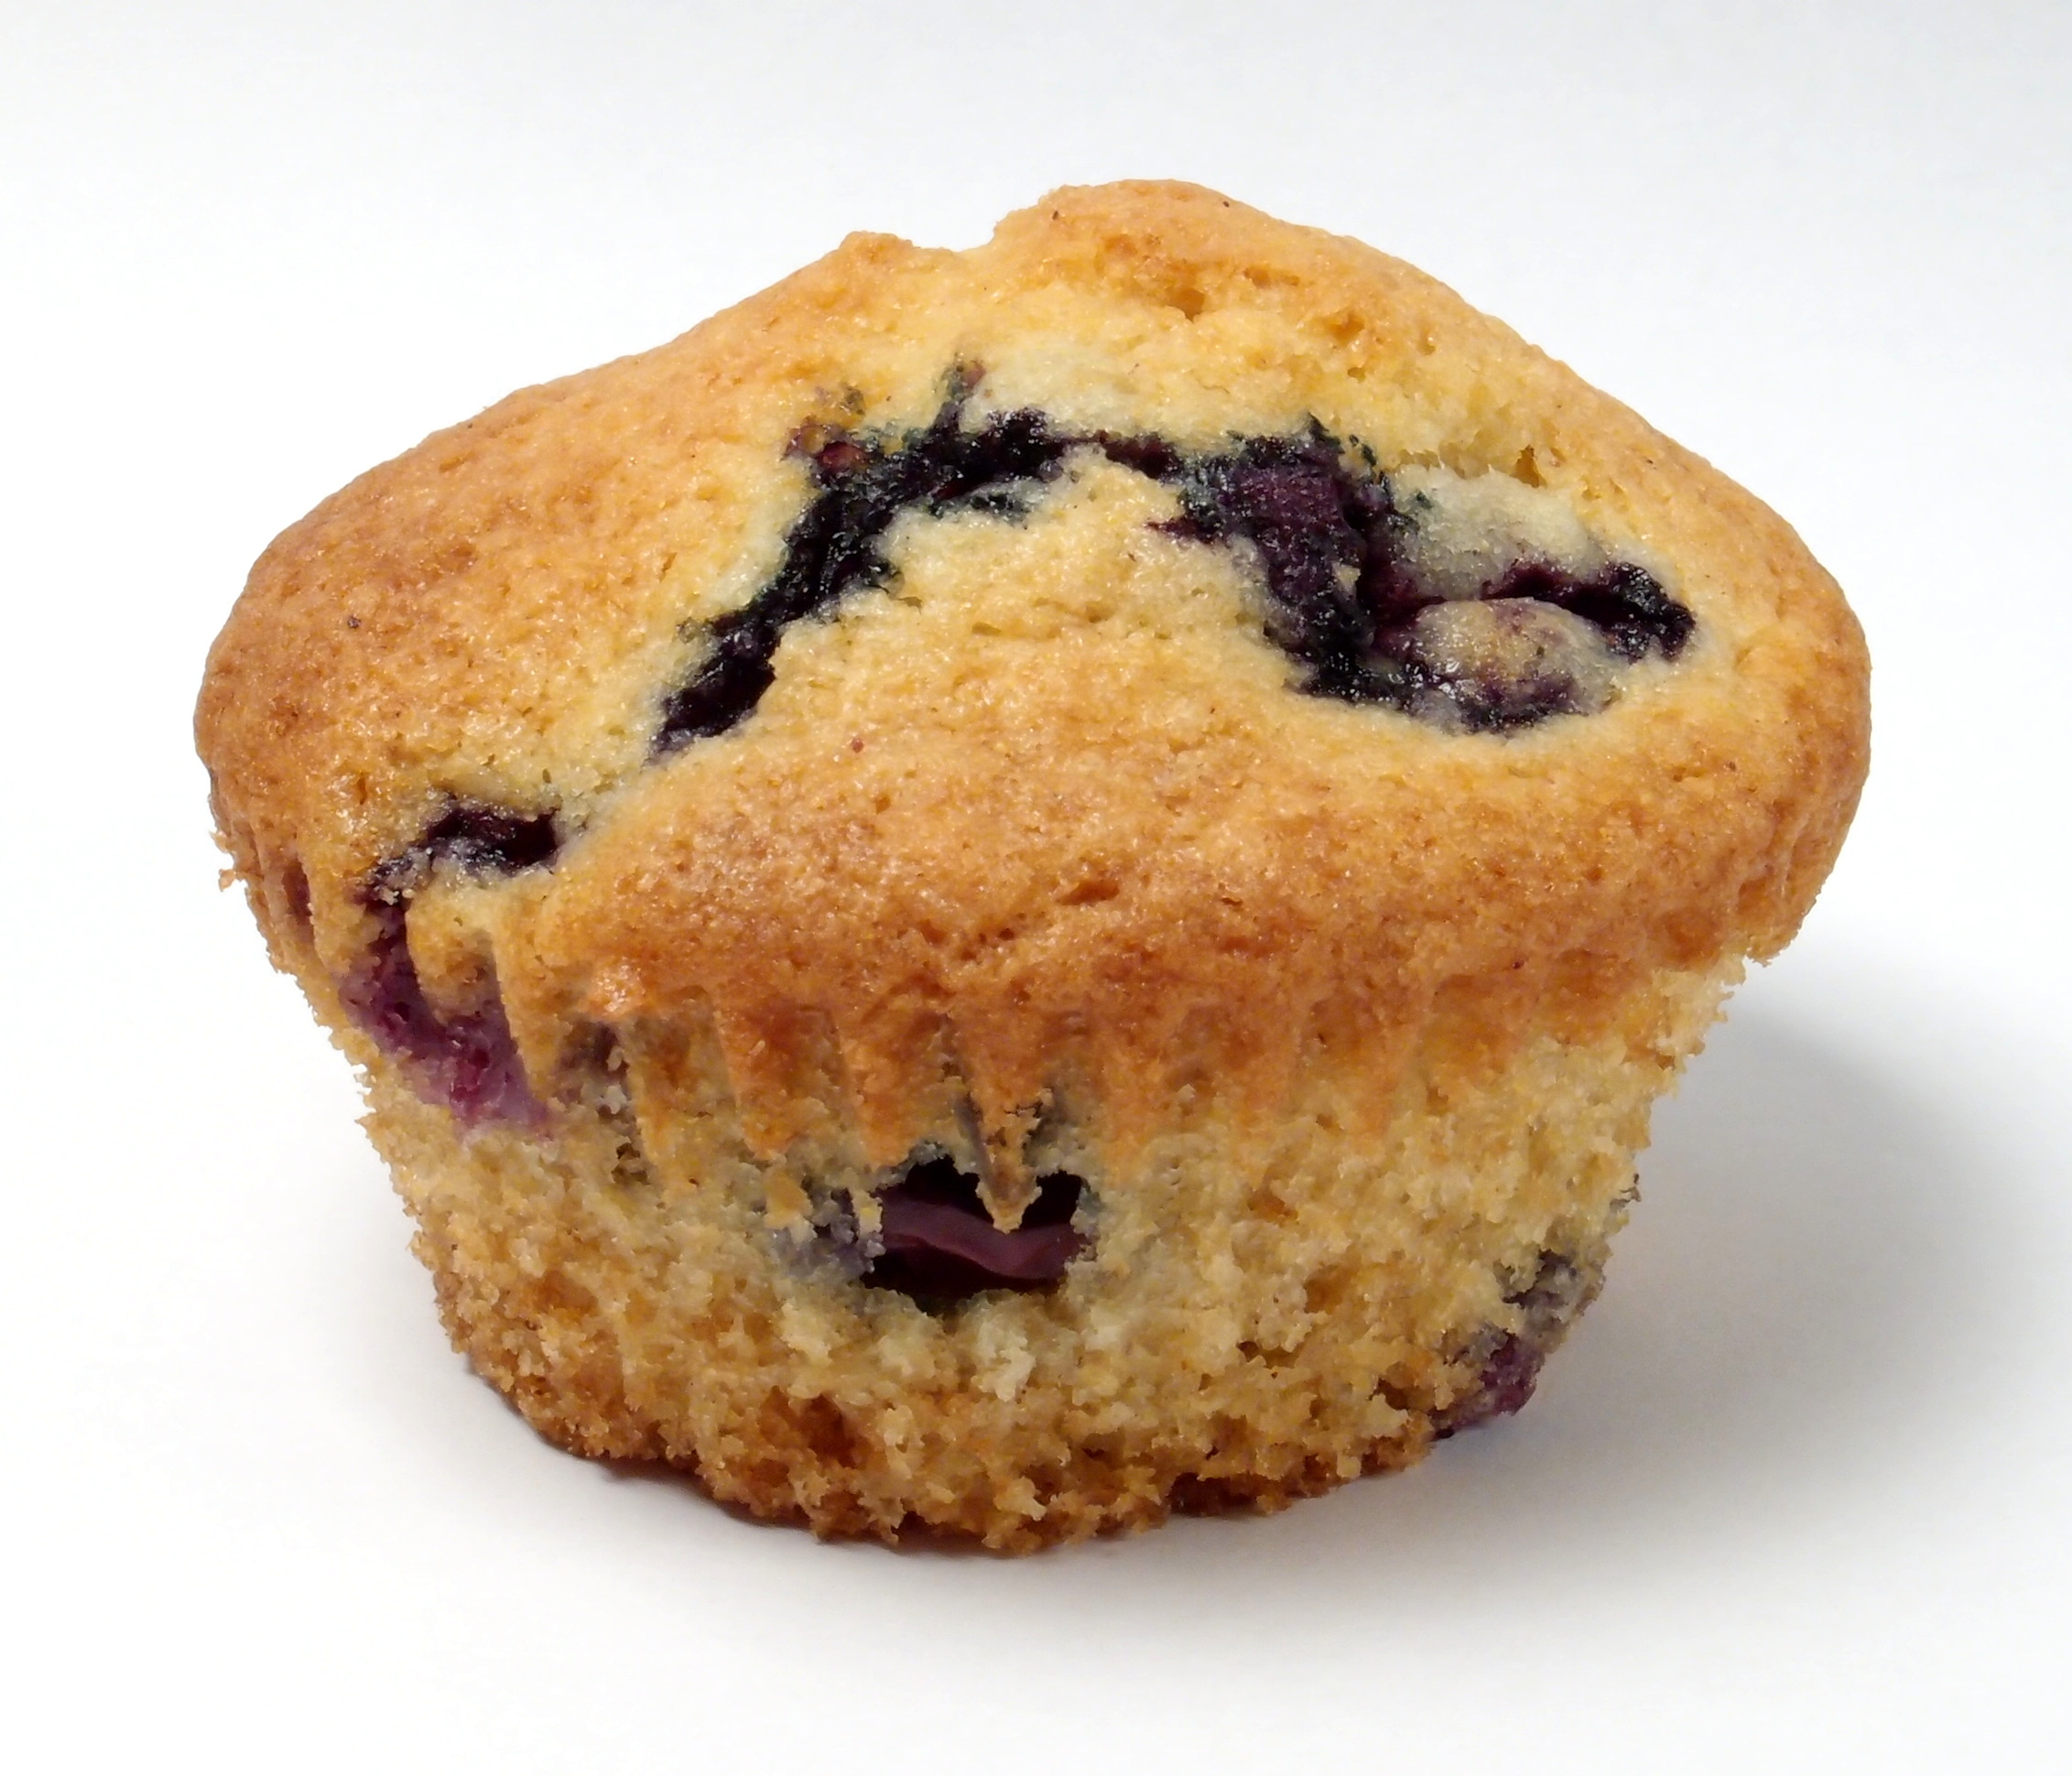 File:Blueberry muffin, unwrapped.jpg - Wikimedia Commons